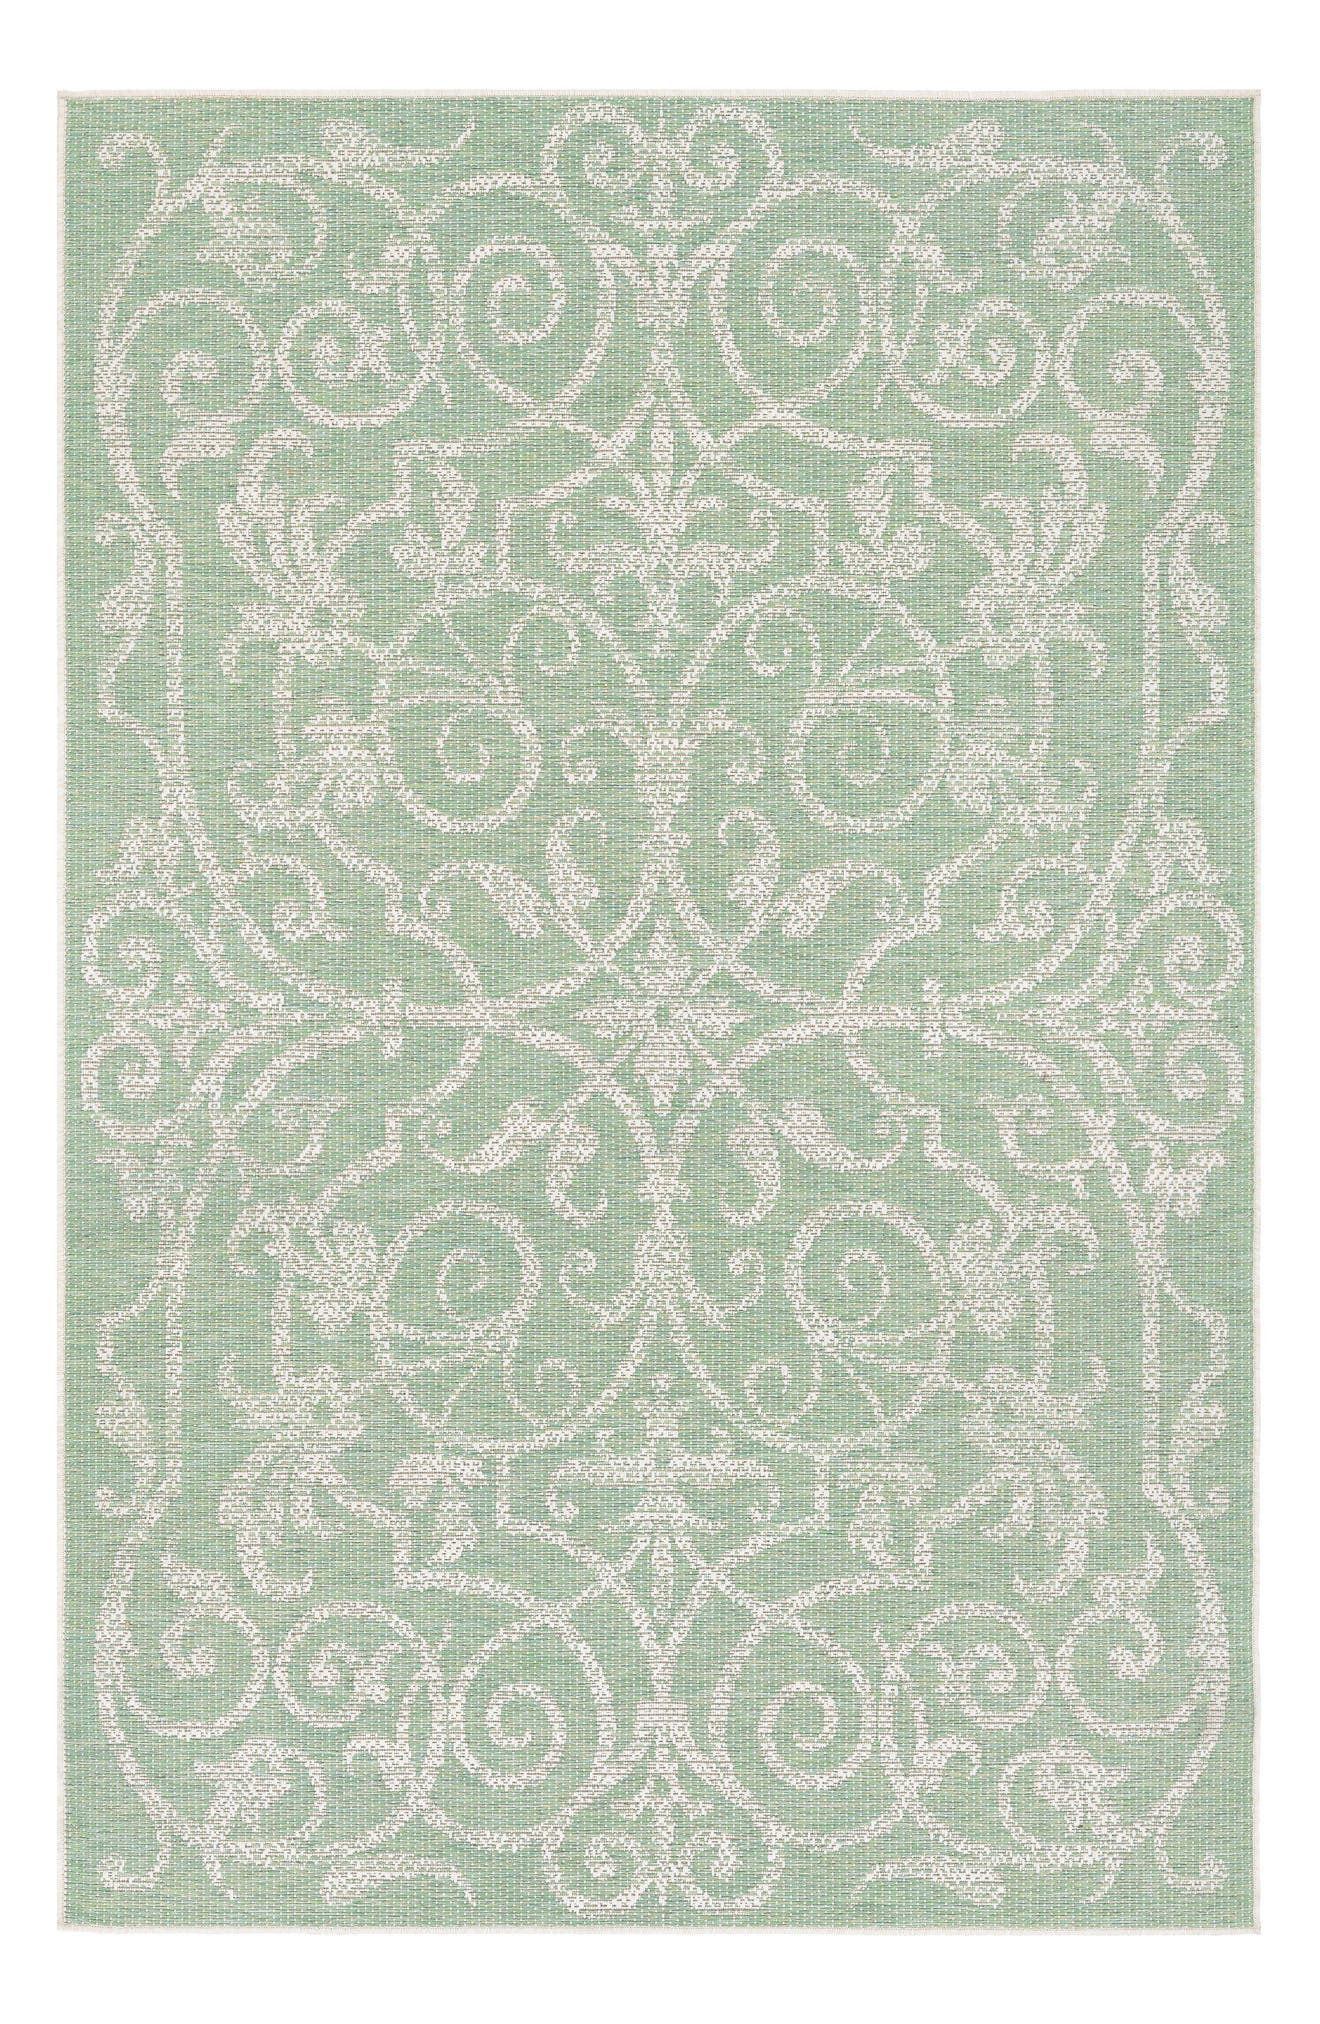 Alternate Image 1 Selected - Couristan Summer Quay Indoor/Outdoor Rug